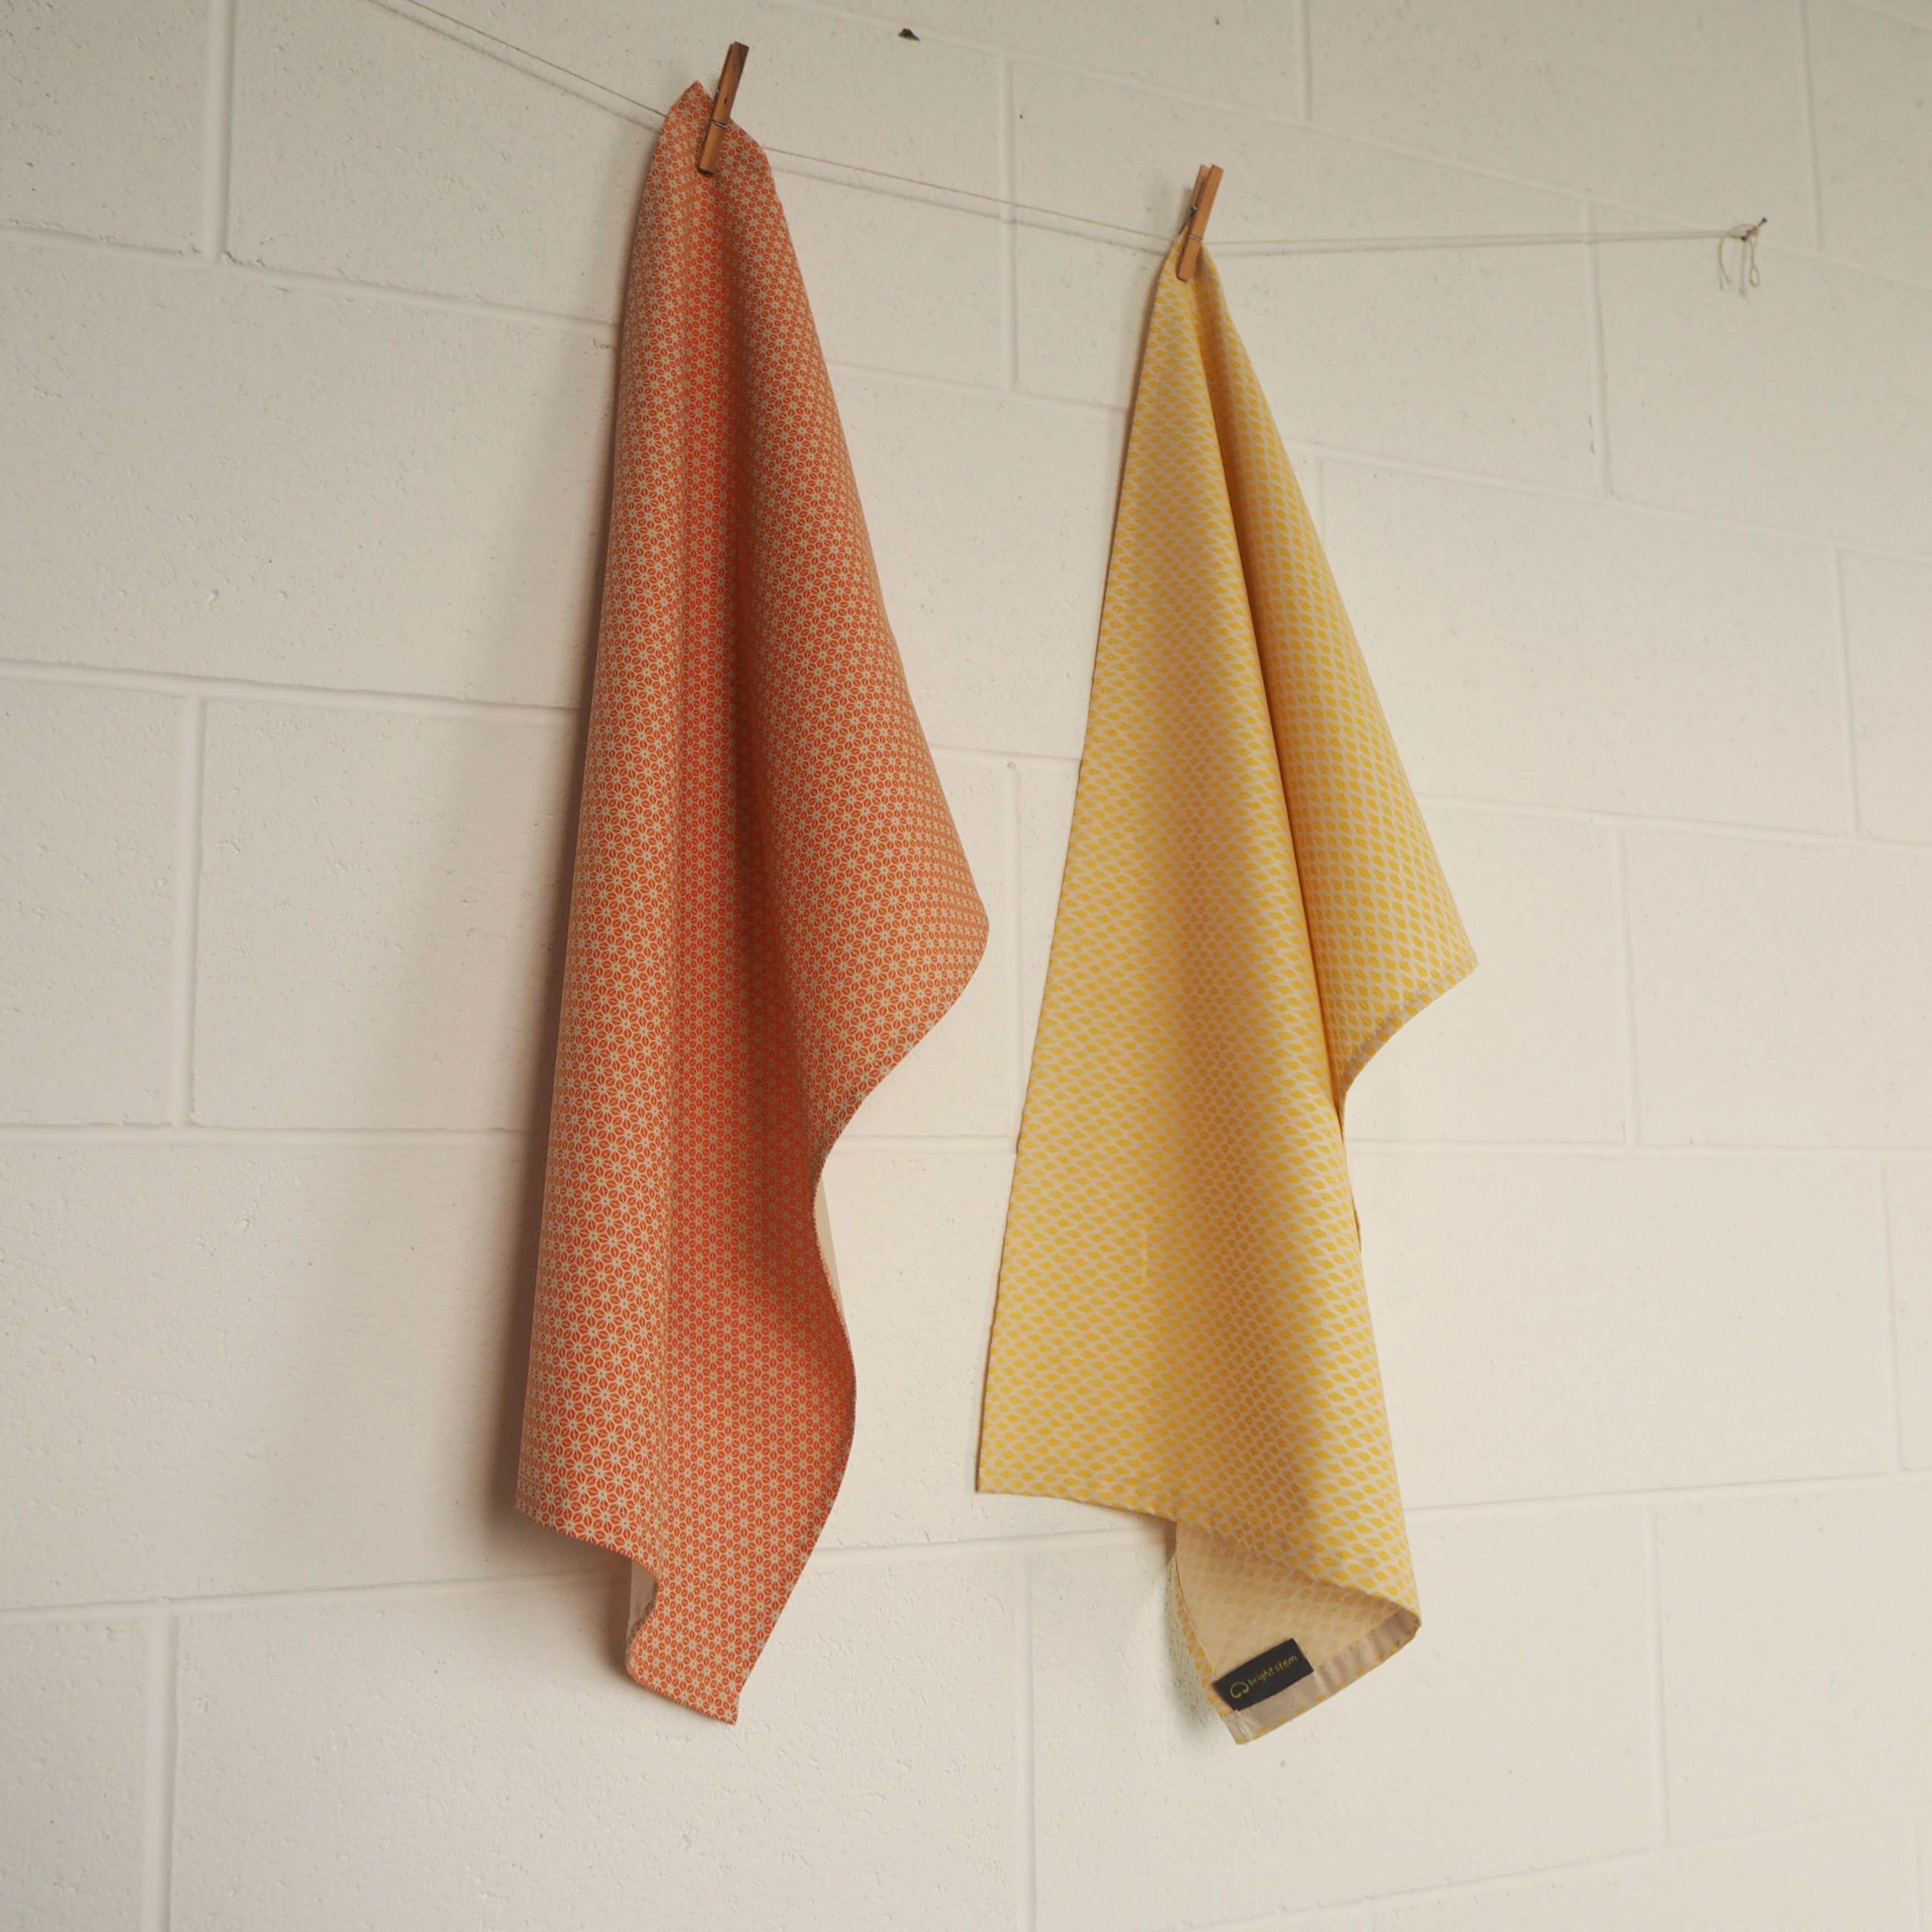 Set of Two Tea Towels Organic Cotton Orange Star and Yellow Triangle Patterns